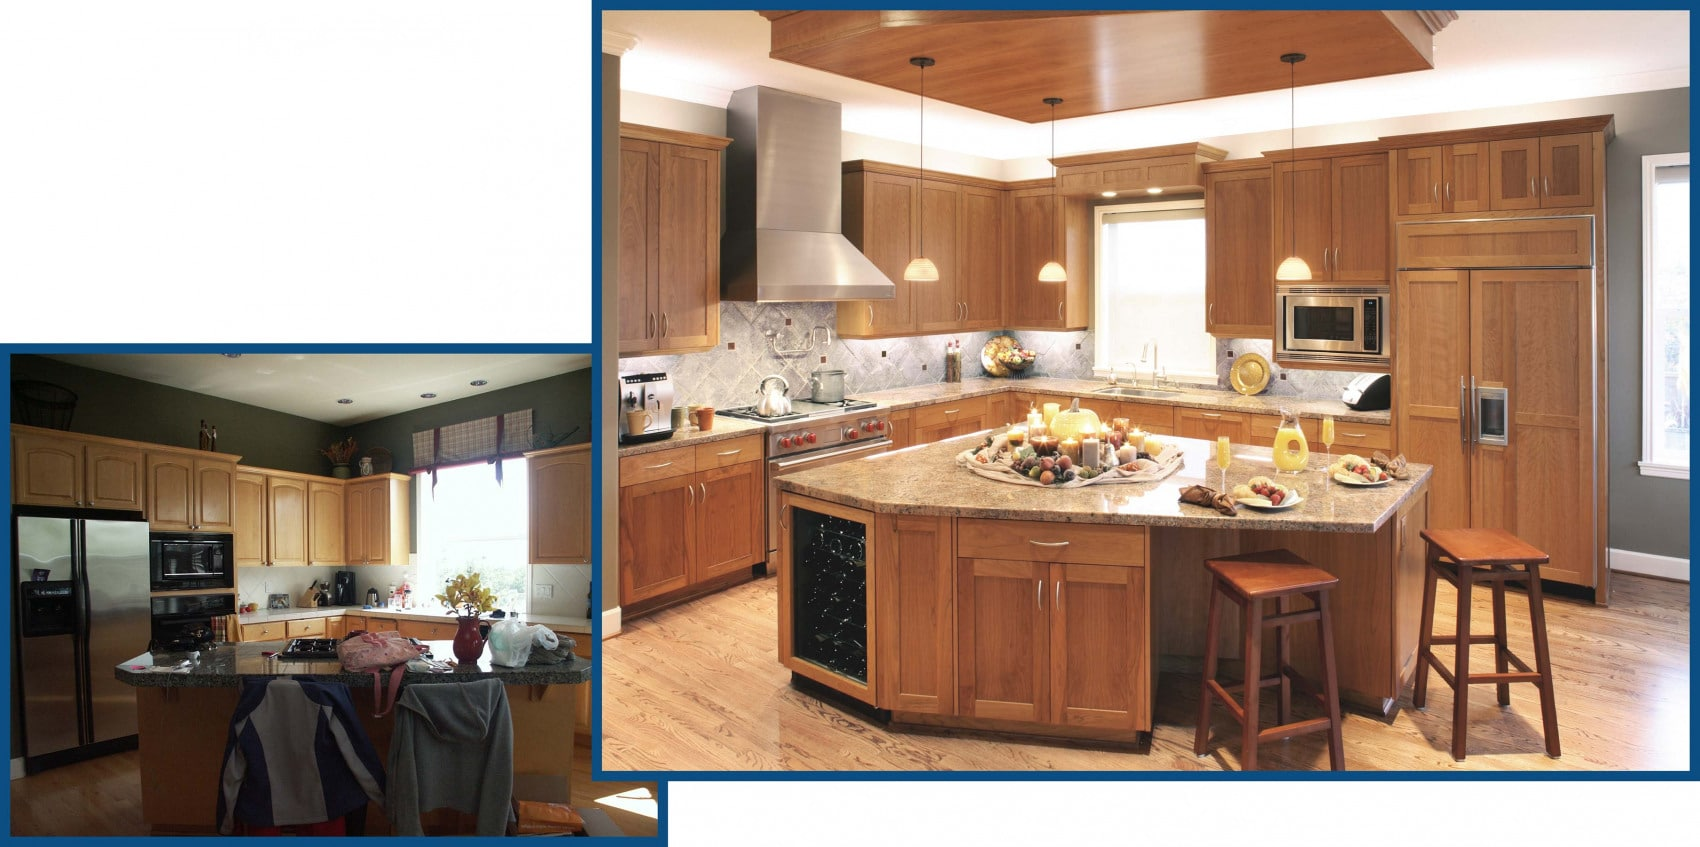 Northwest Portland Kitchen Remodel Before and After